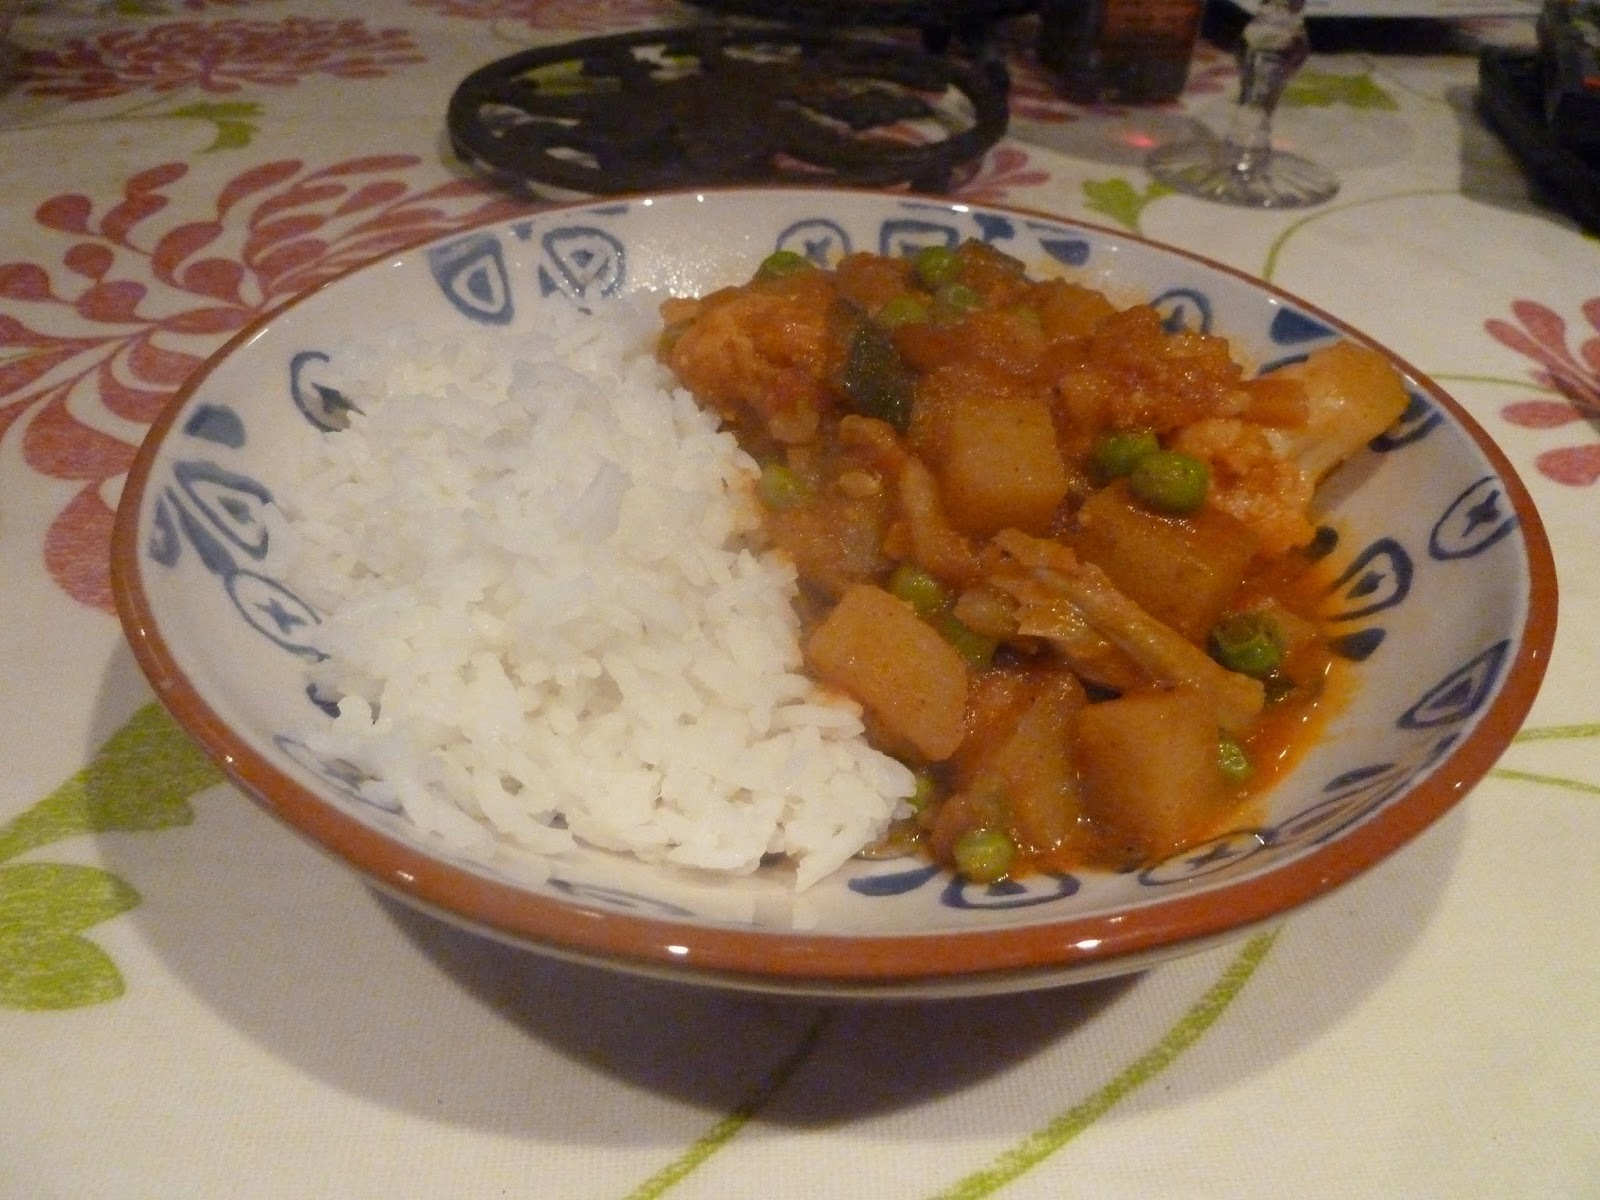 Potato, cauliflower and courgette curry with rice